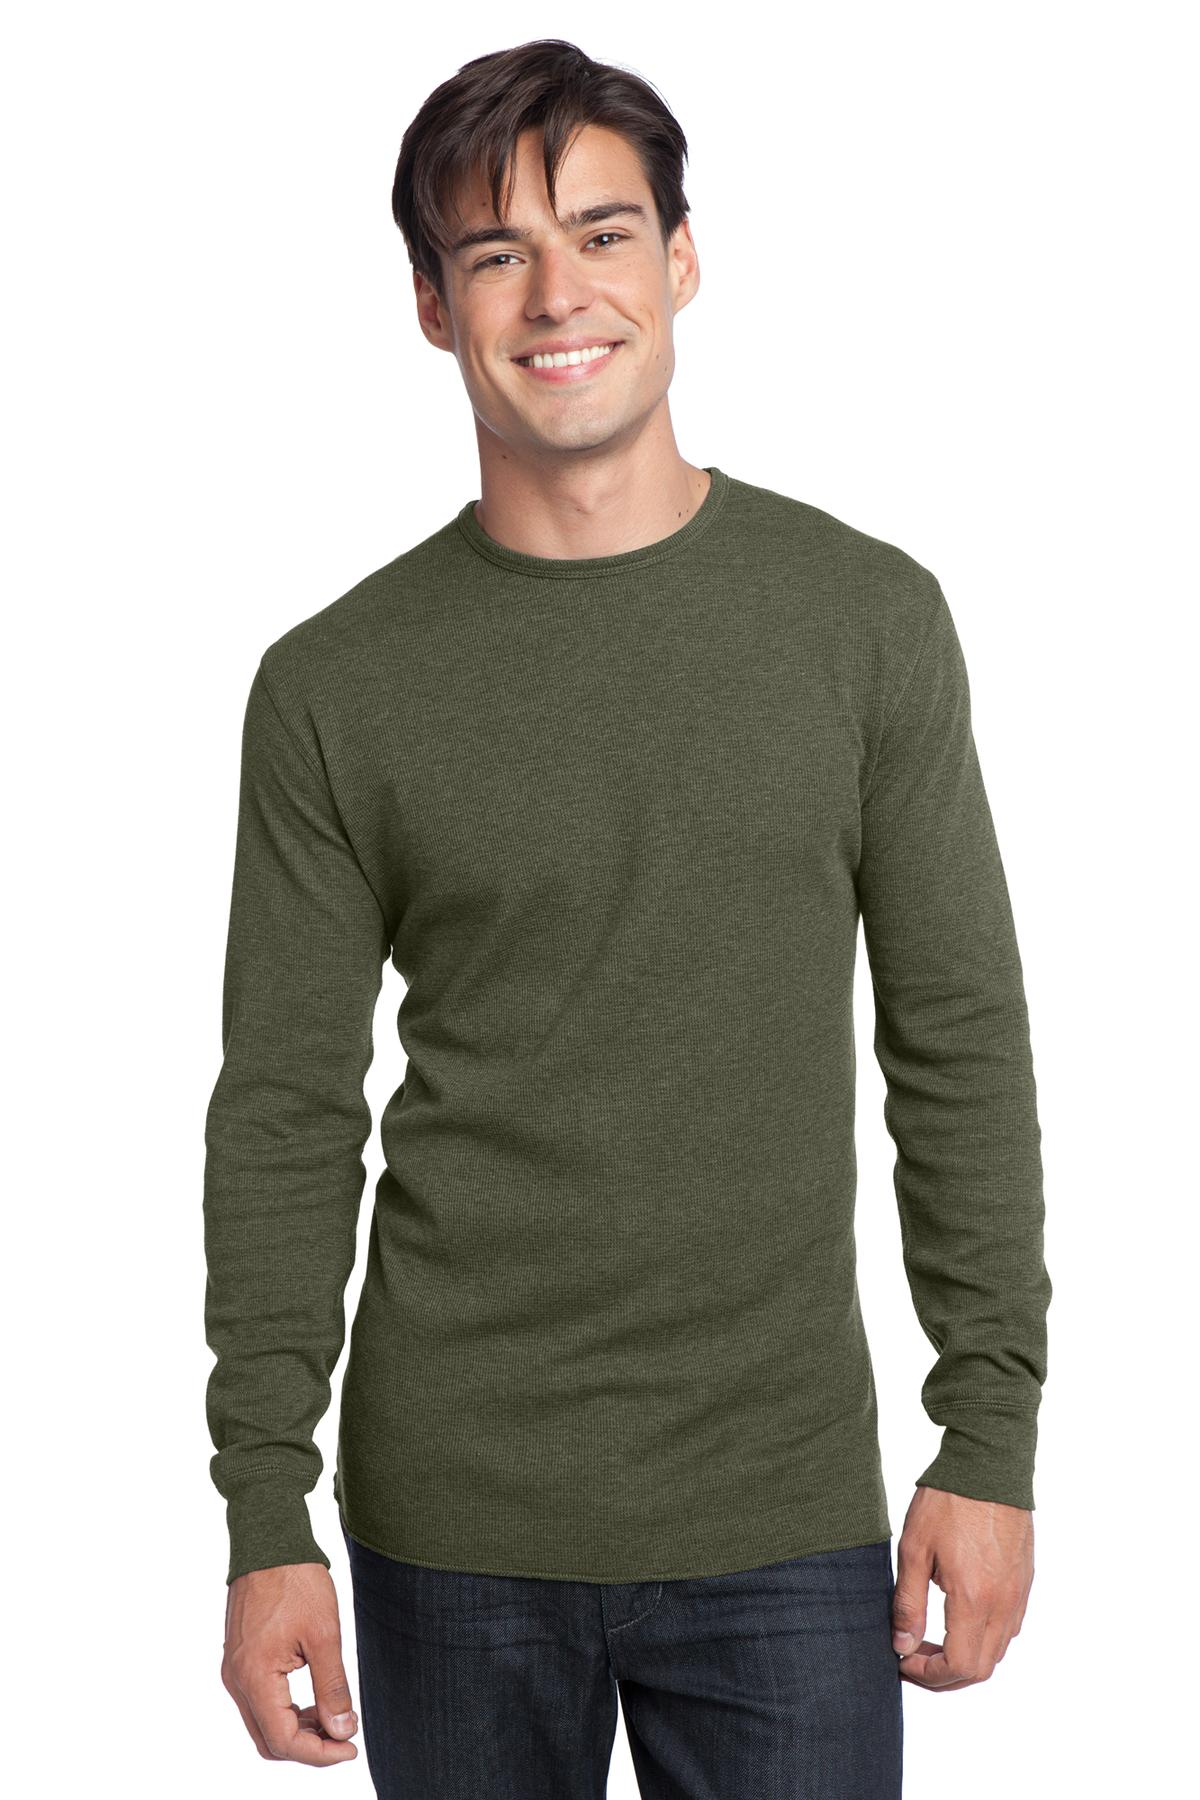 District ®  - Young Mens Long Sleeve Thermal.  DT118